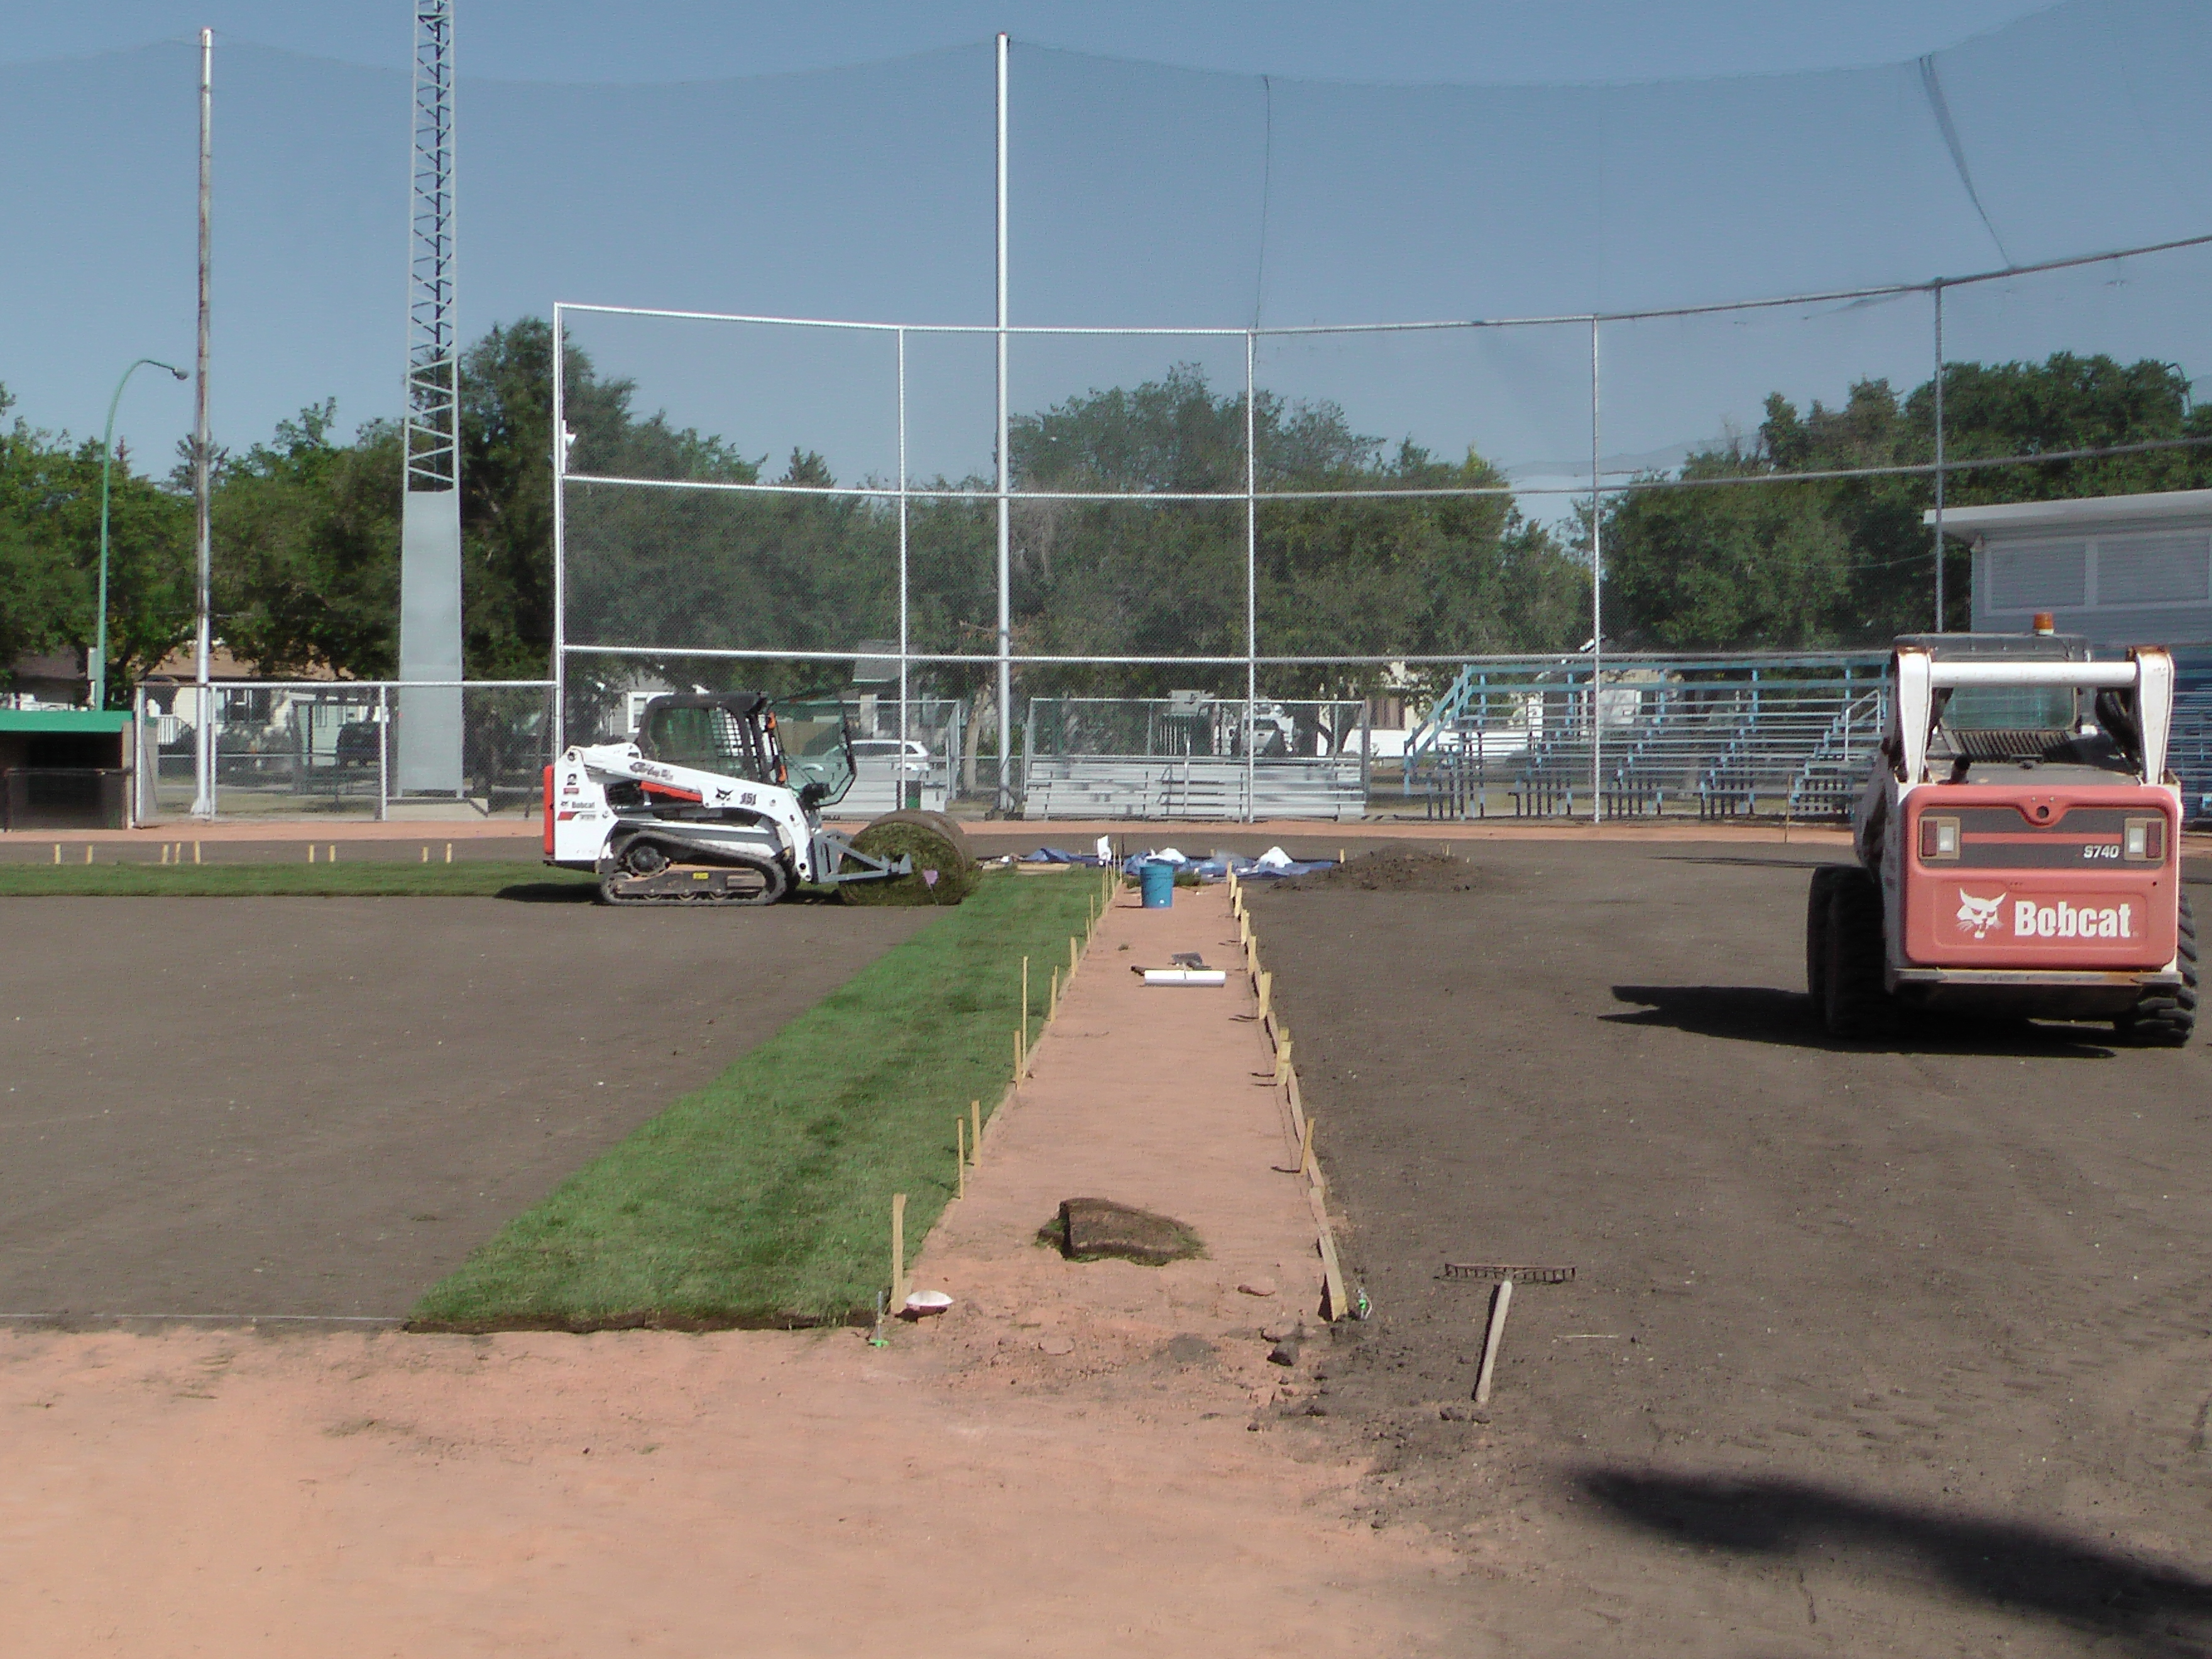 Sept 5 2018 Optimist Park Field Renovations, Placing New Sod/Leveling! - Image 4